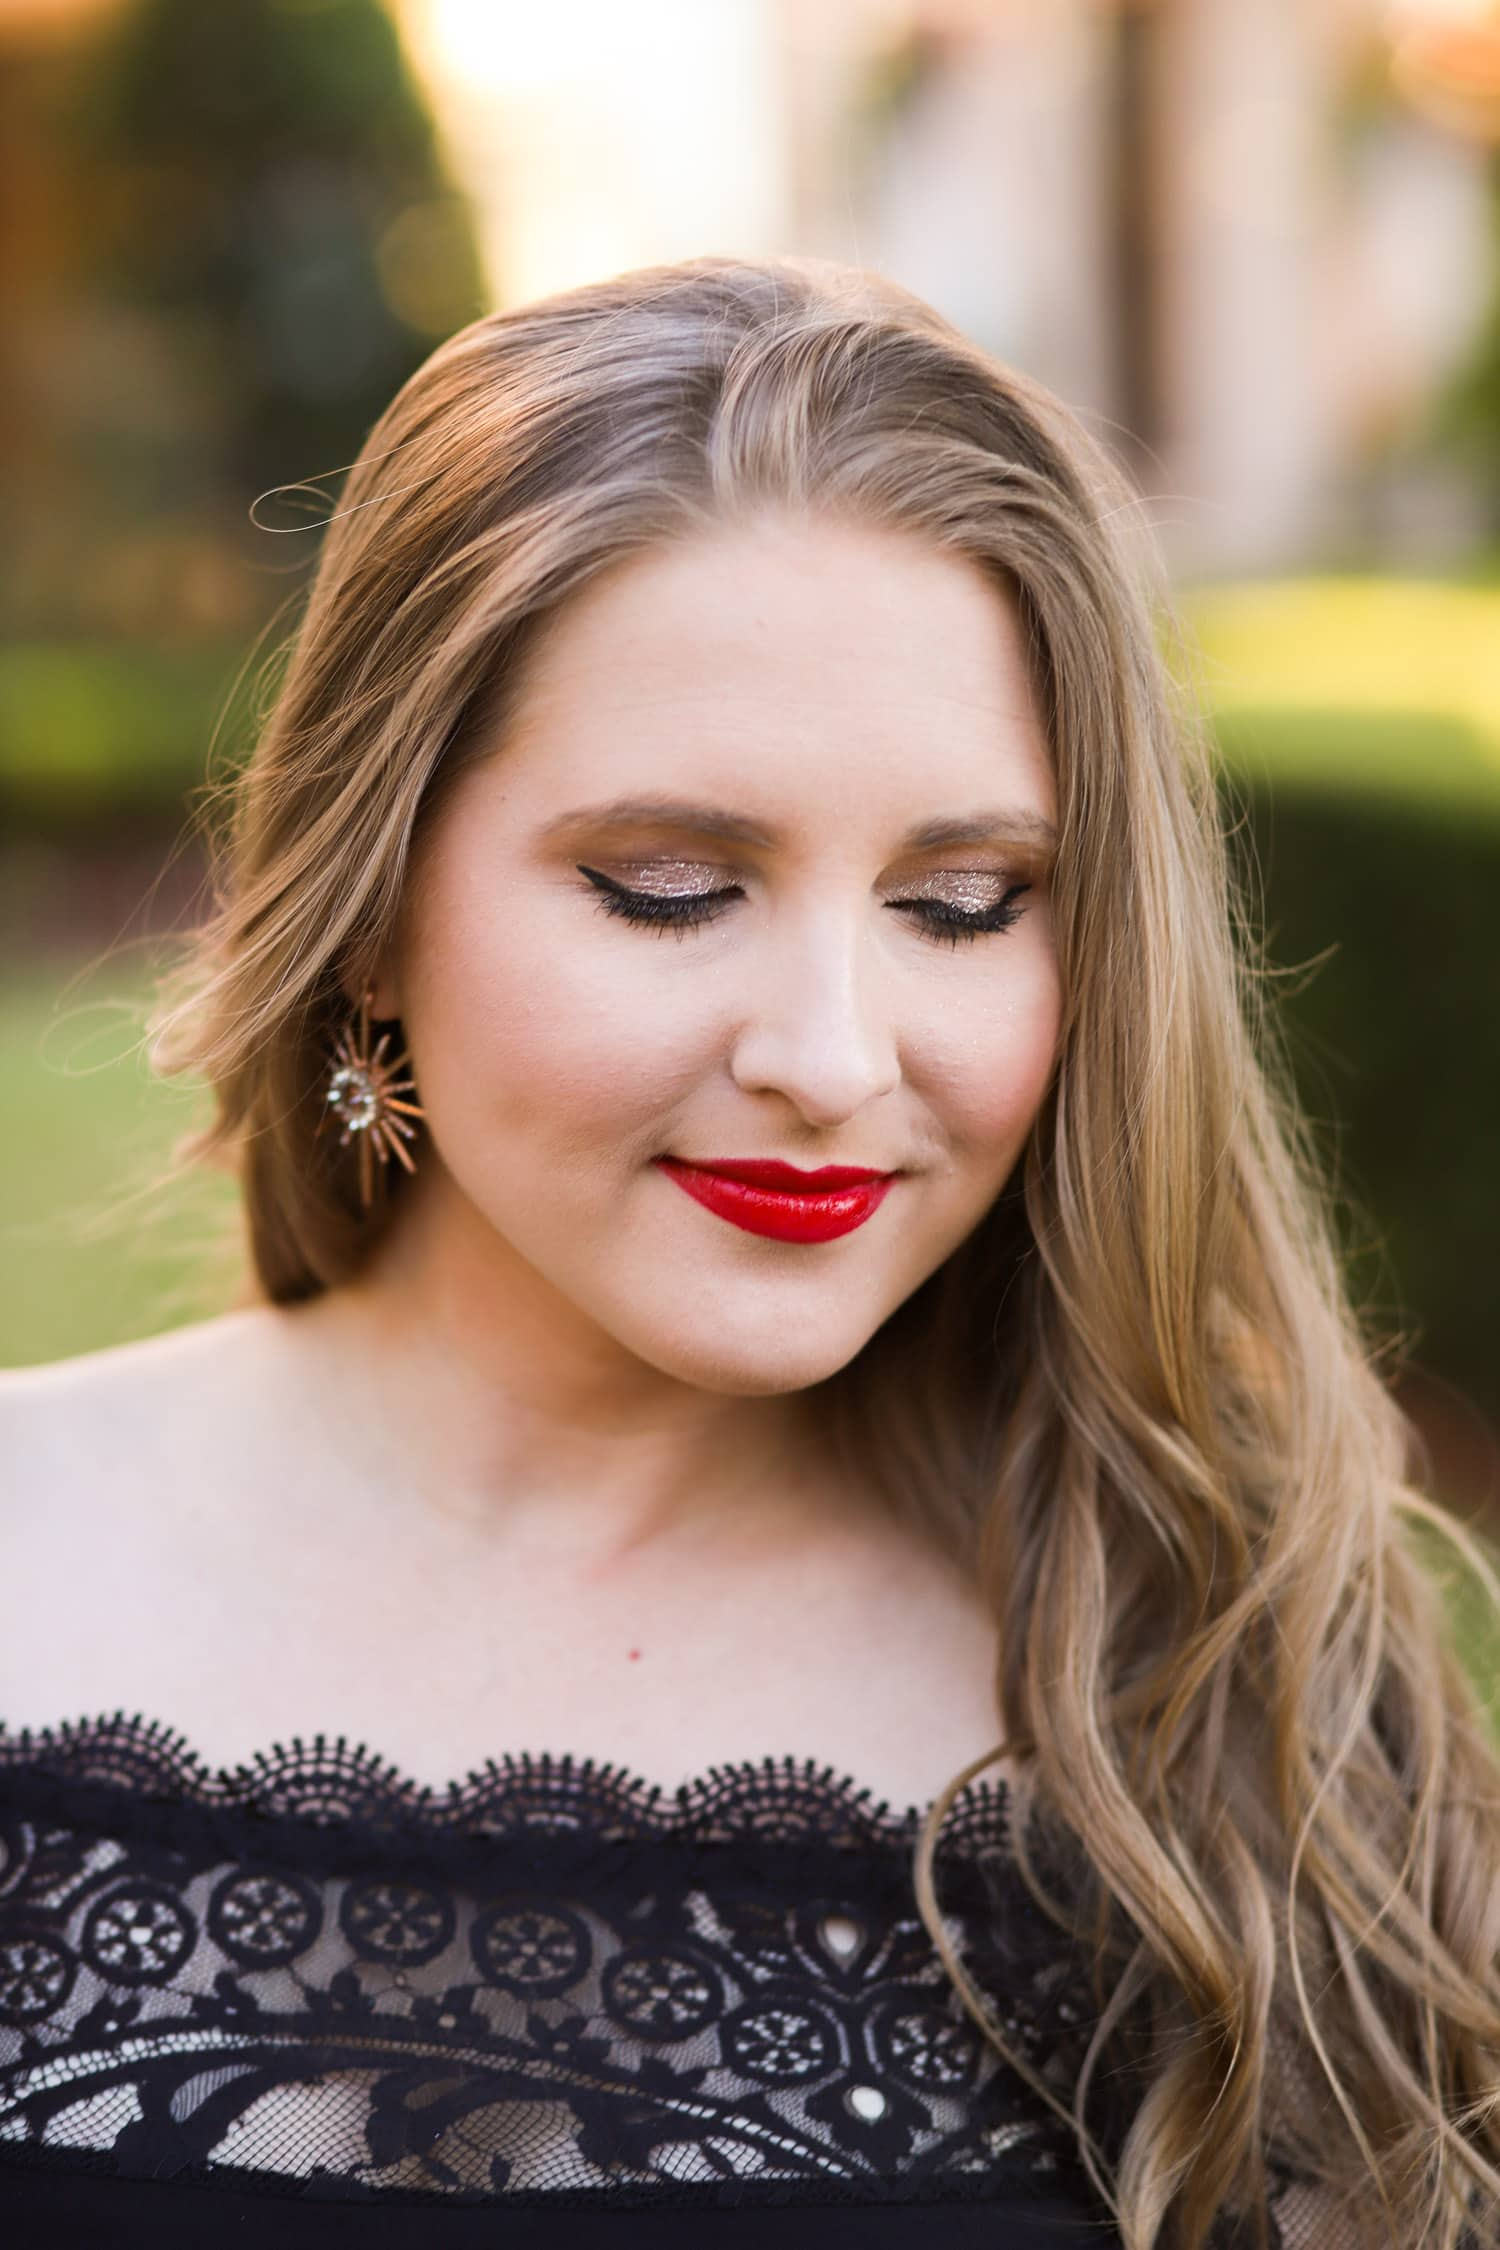 Beauty blogger | holiday glamour outfit black dress | Ashley Brooke Nicholas | Holiday outfit ideas | holiday outfits | black lace dress| holiday hairstyles | redken hair